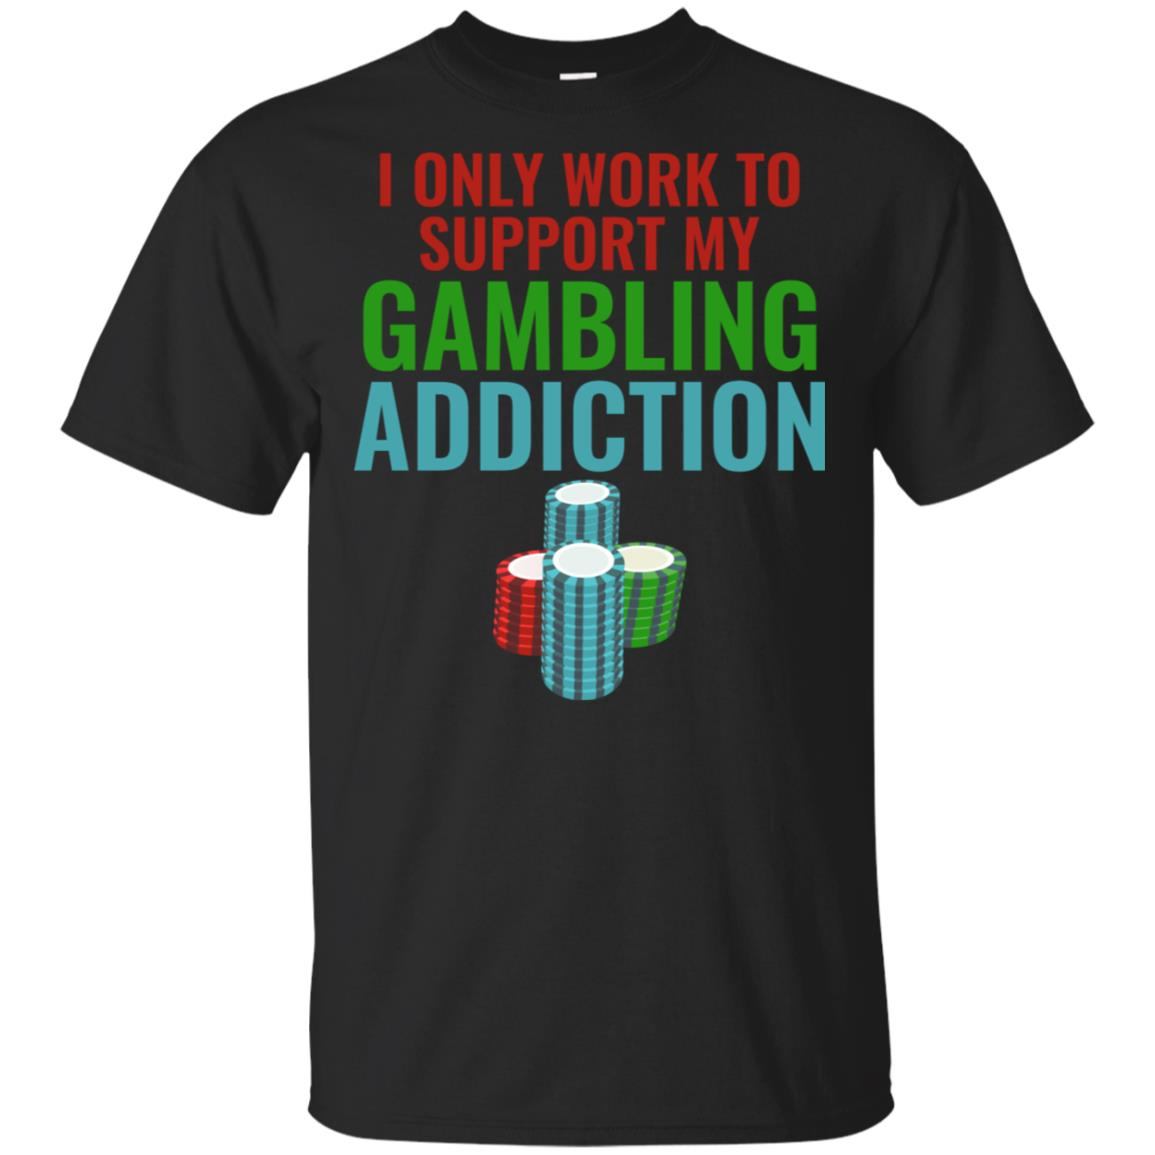 I Only Work to Support My Gambling Addiction Unisex Short Sleeve